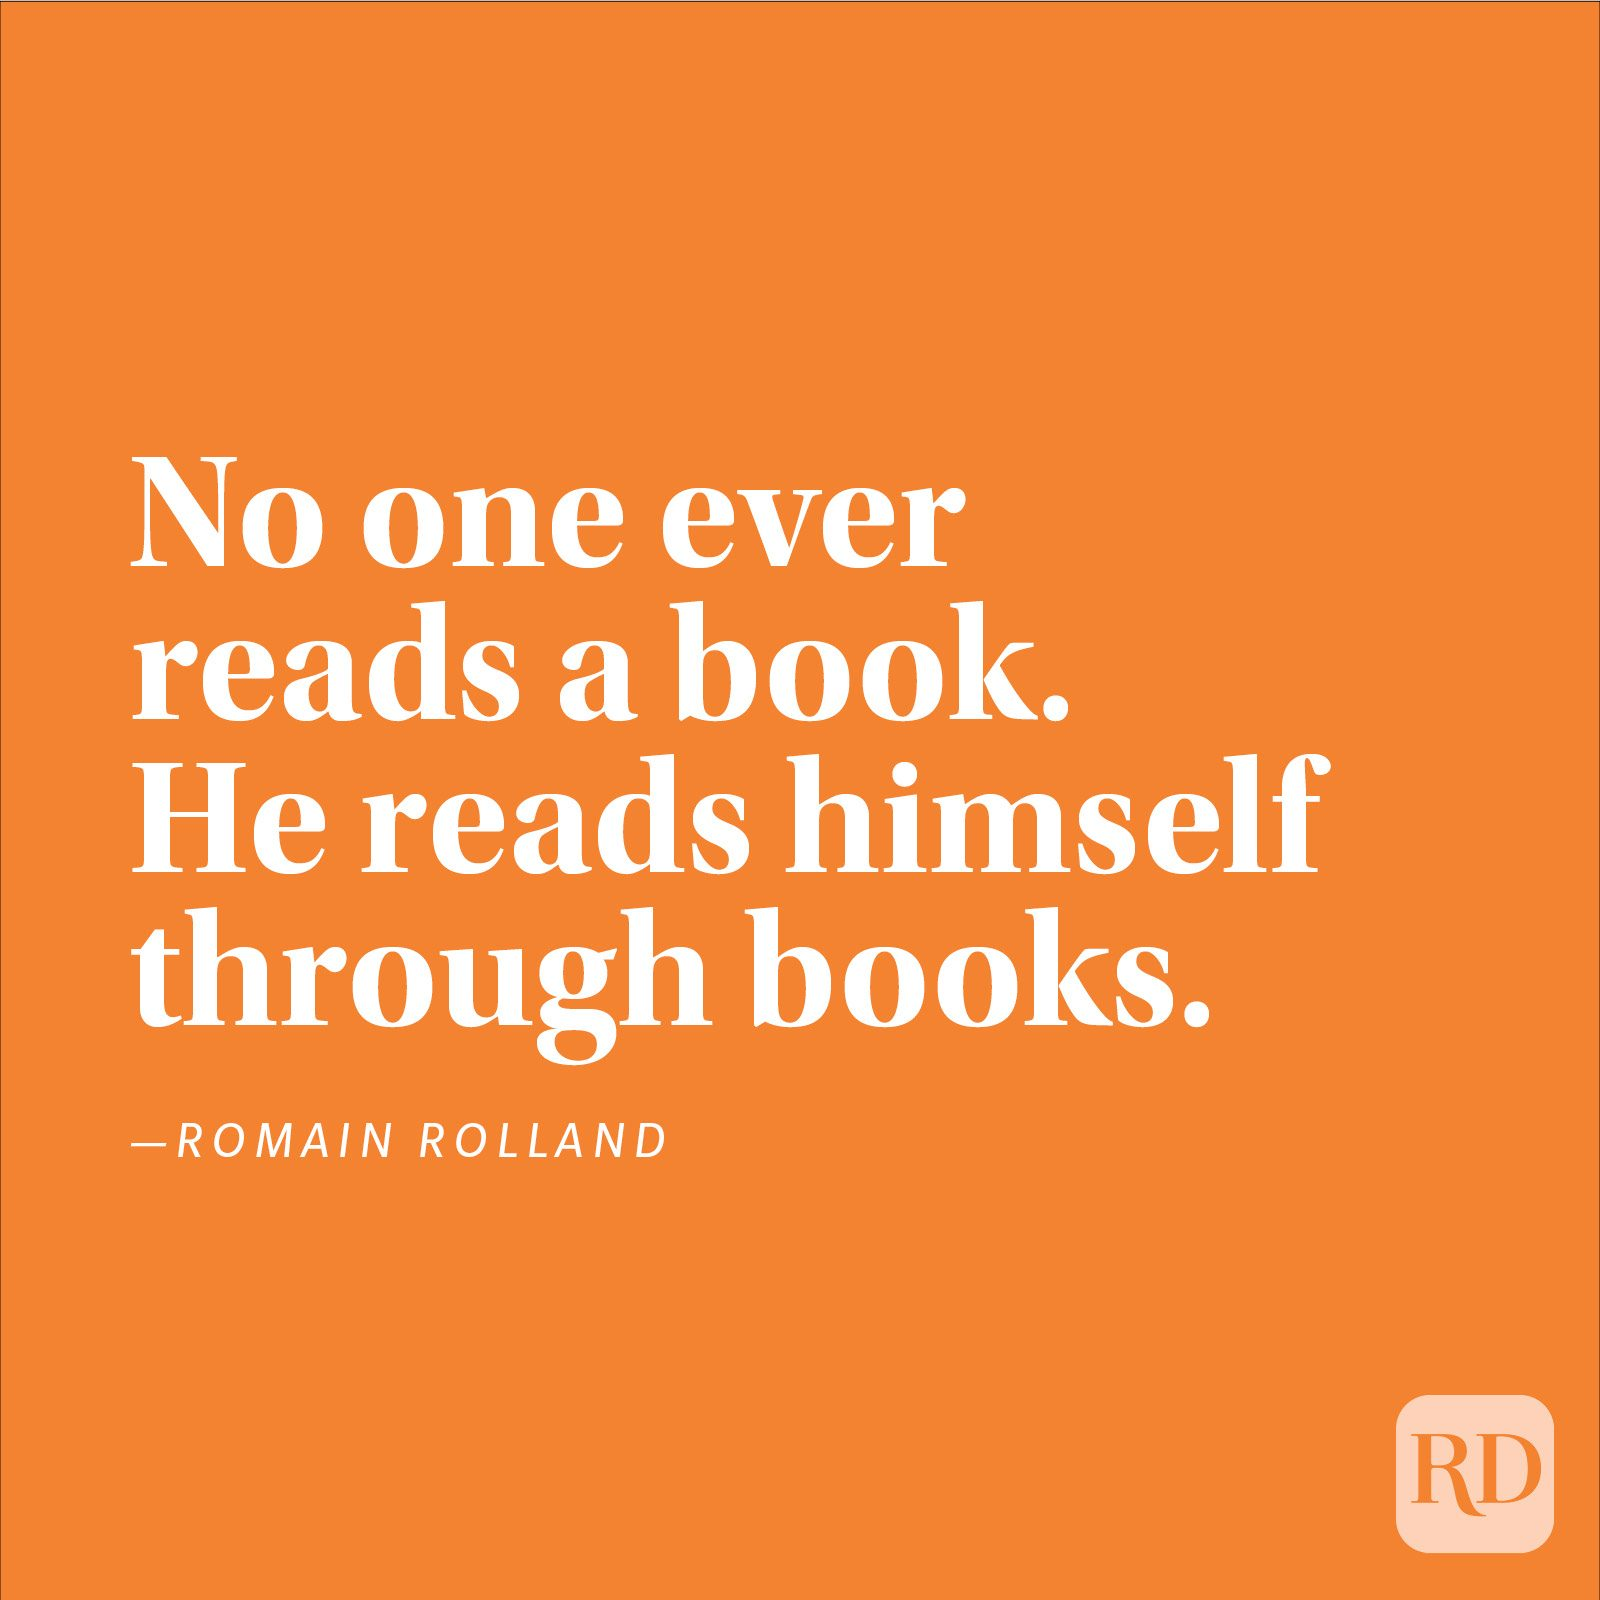 """No one ever reads a book. He reads himself through books."" —Romain Rolland."